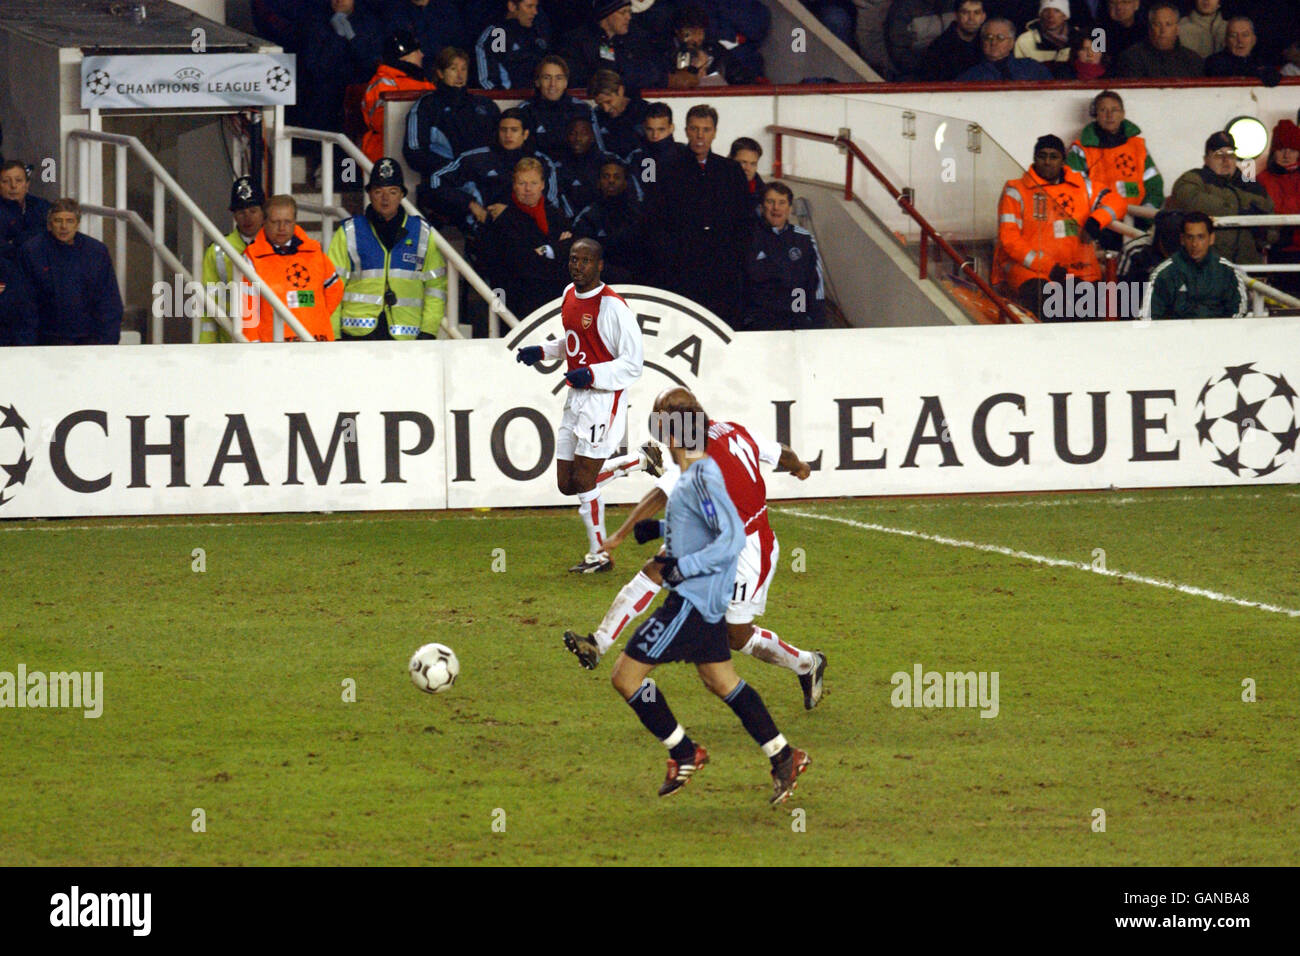 Soccer - UEFA Champions League - Group B - Arsenal v Ajax - Stock Image